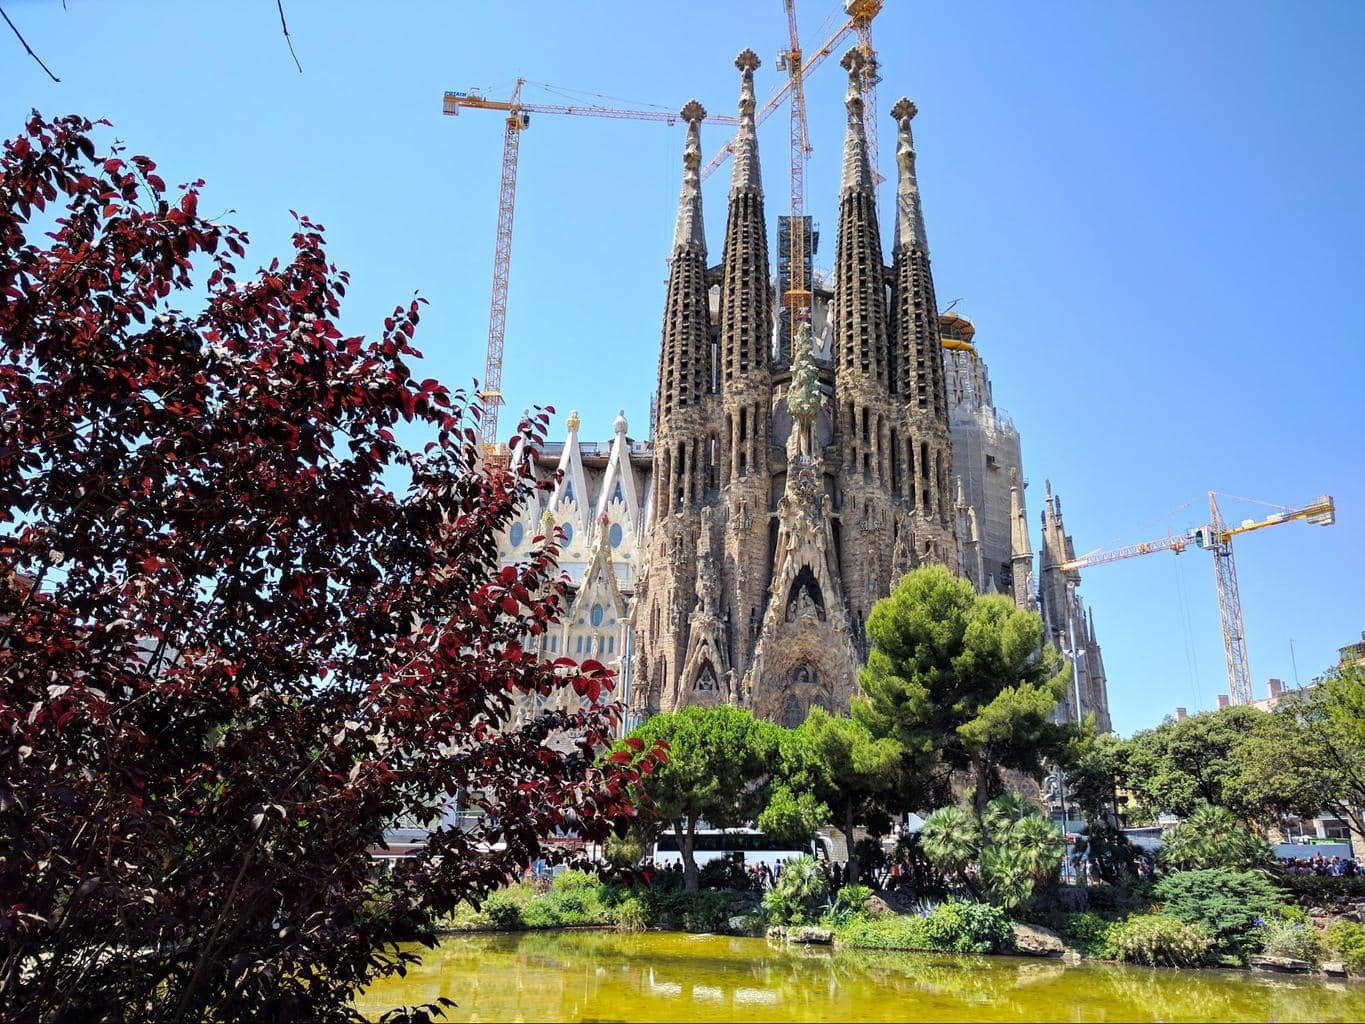 Sagrada Familia viewed from the park